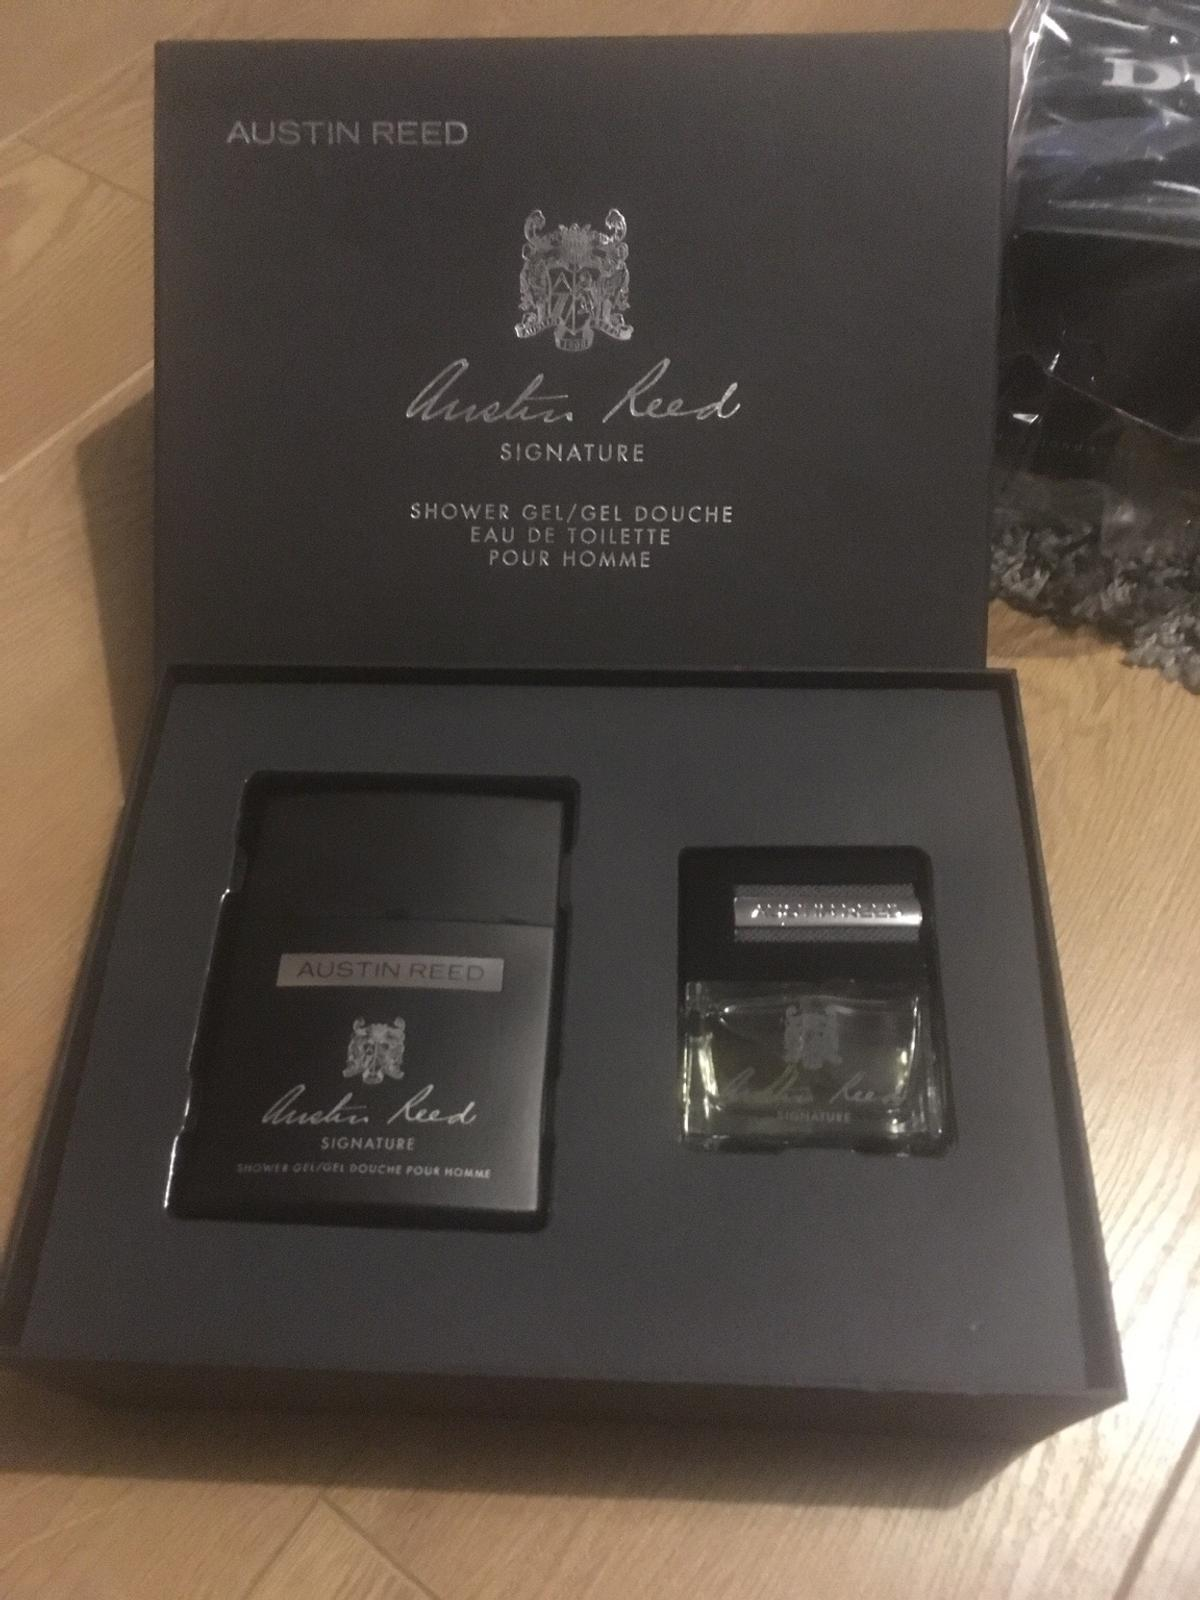 Austin Reed Aftershave Box Set 15 In Nn16 Kettering For 15 00 For Sale Shpock